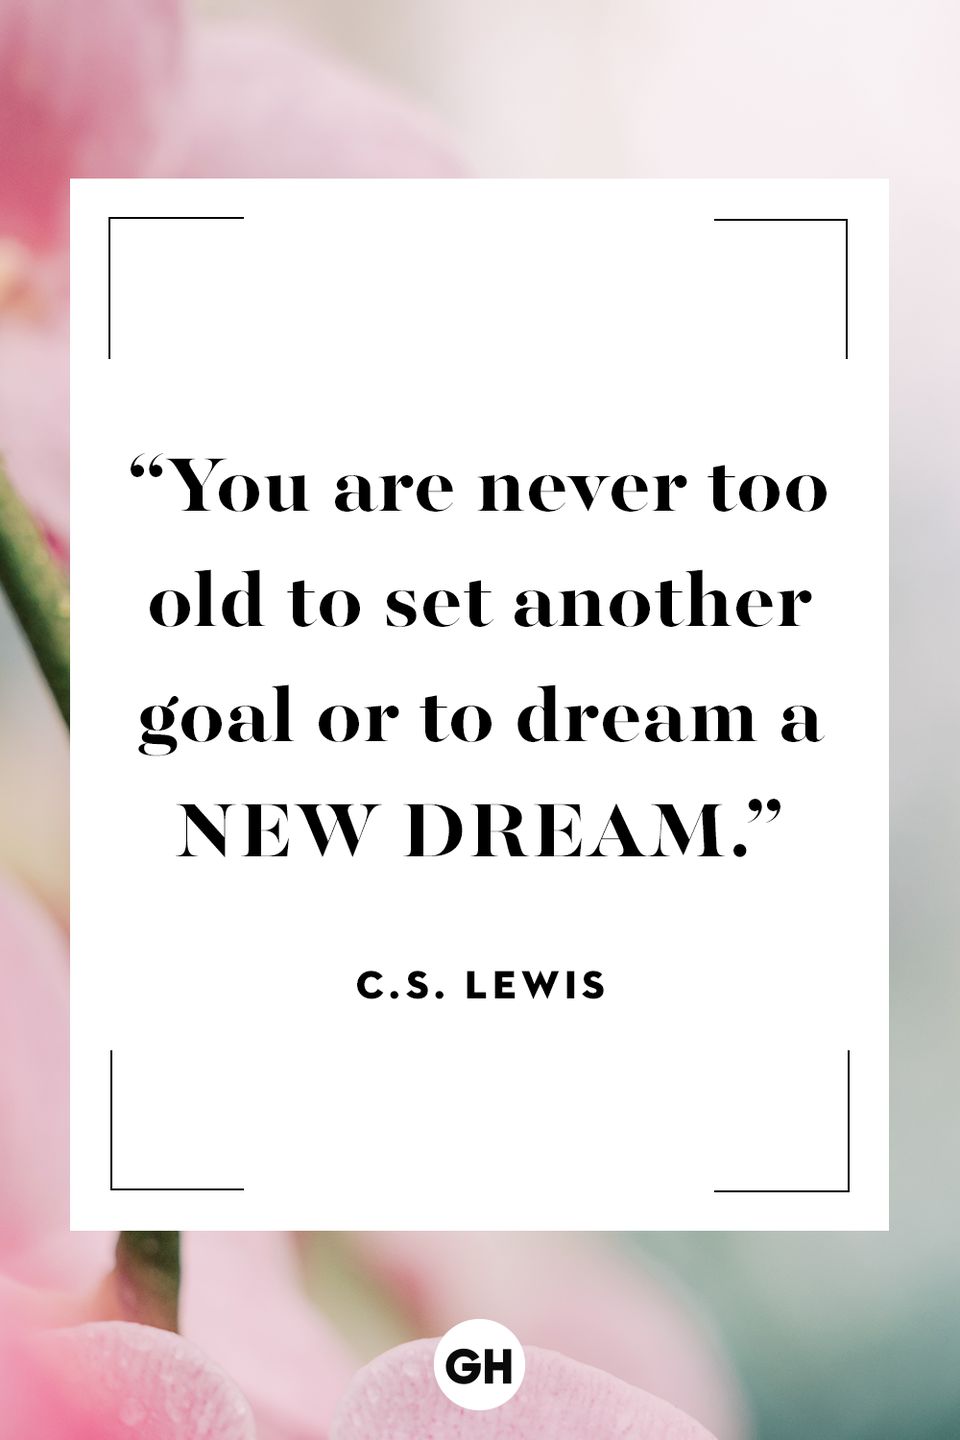 <p>You are never too old to set another goal or to dream a new dream. </p>